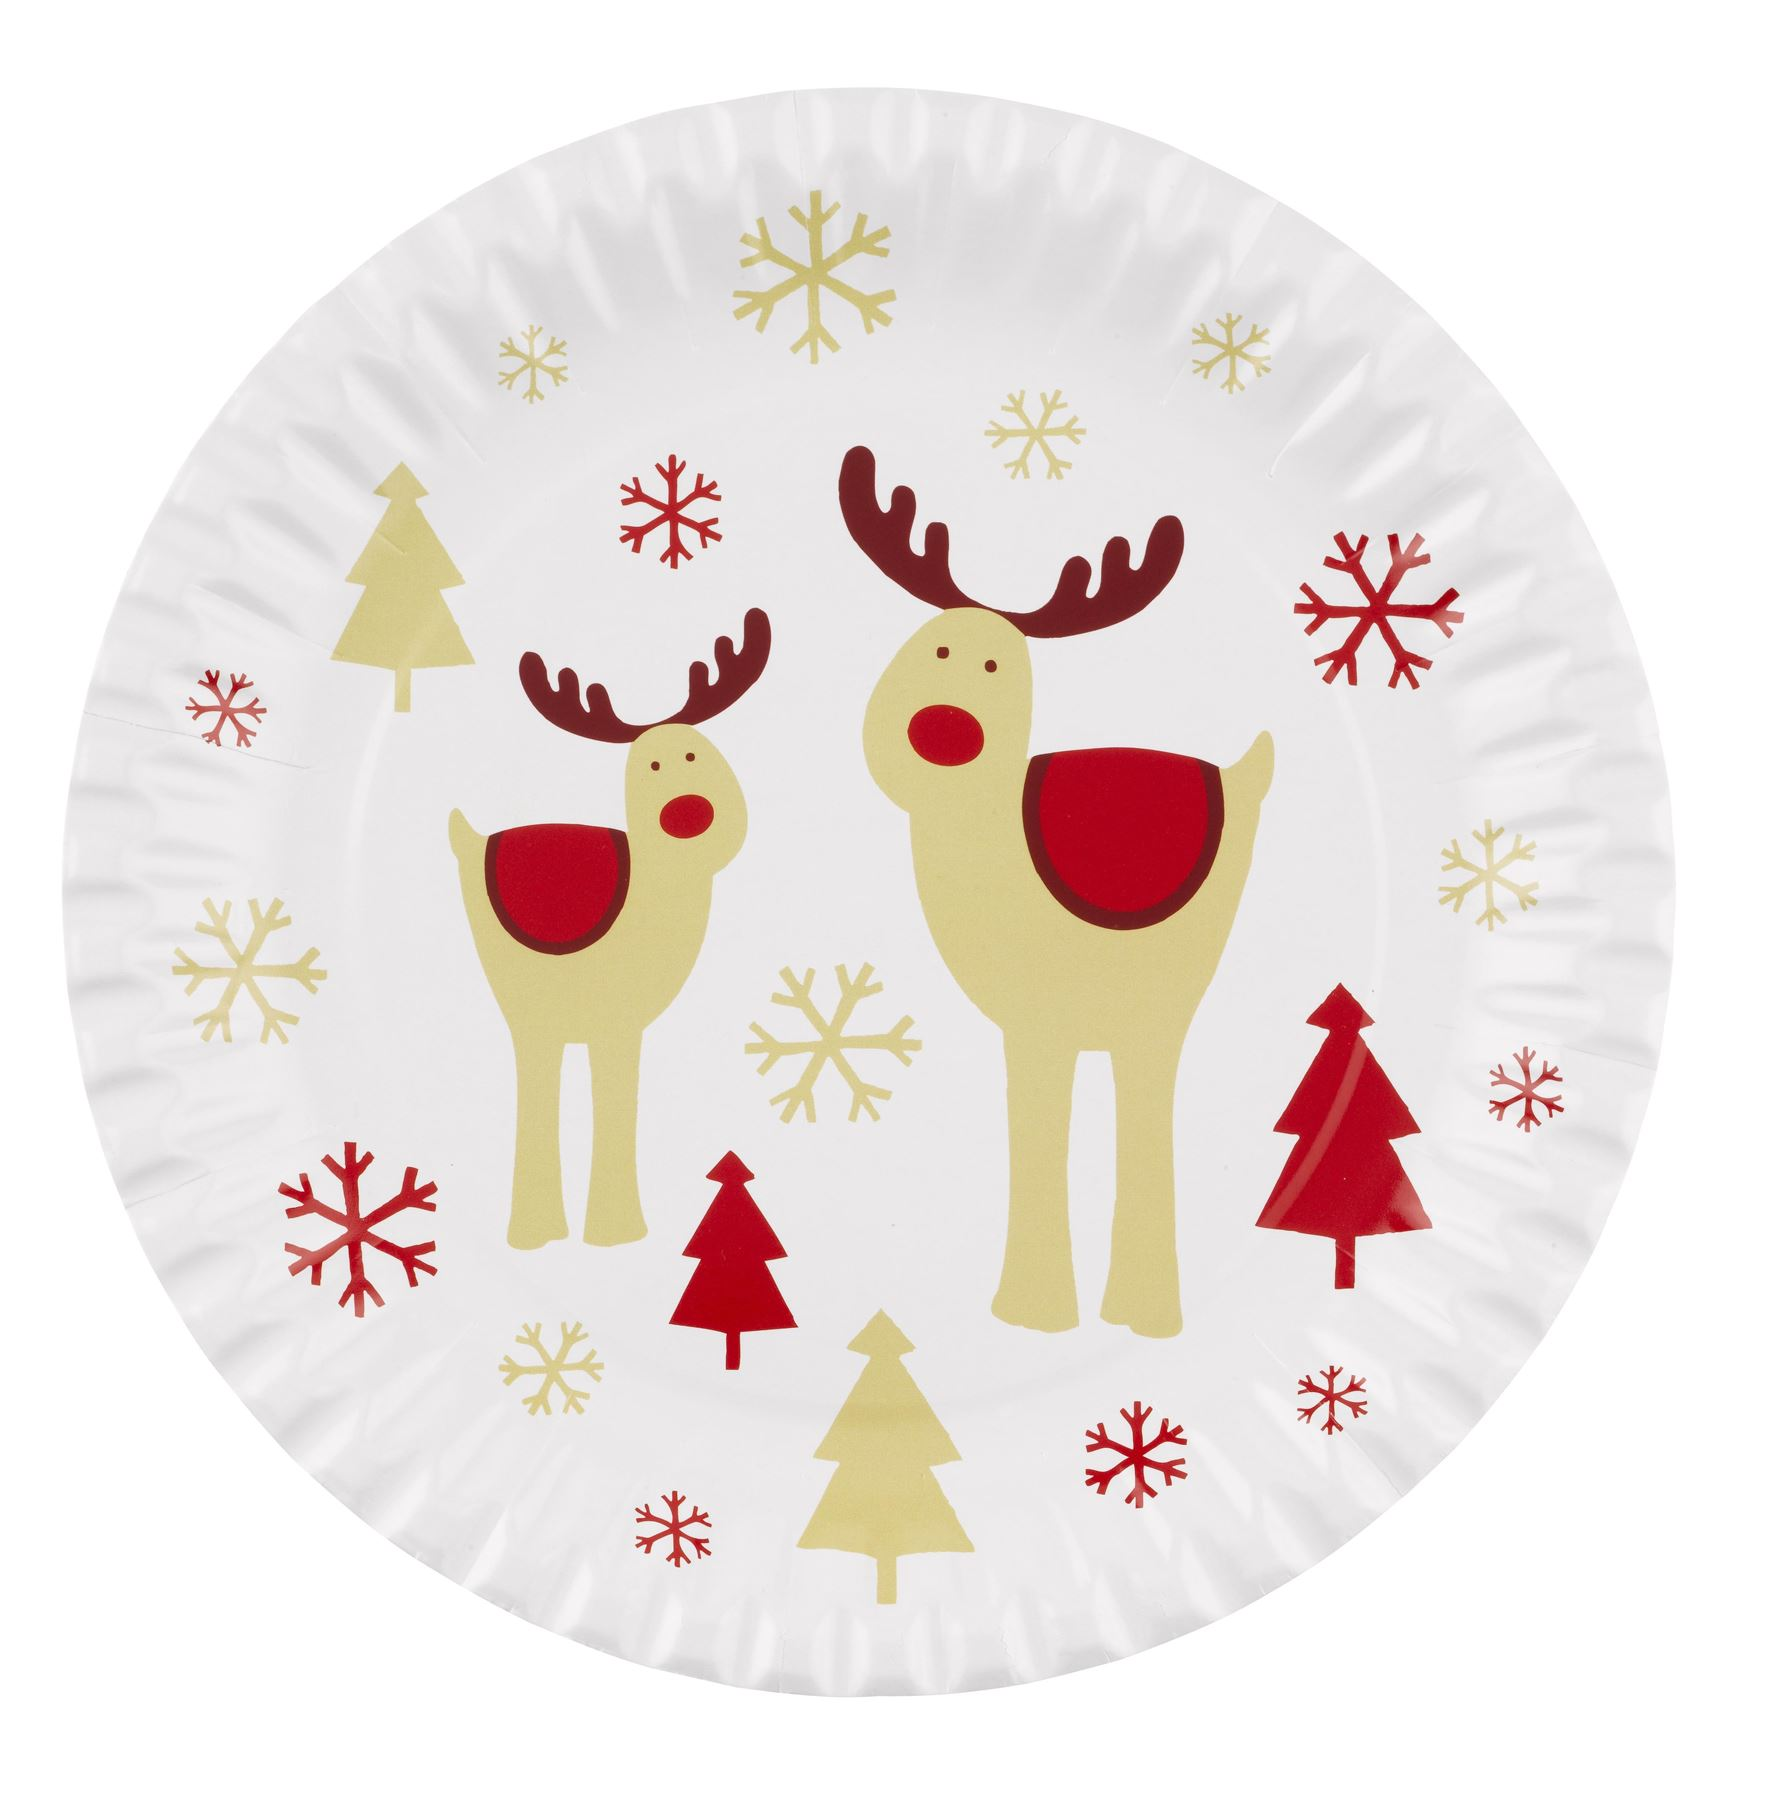 Christmas Party Paper Plates Part - 25: Christmas-Party-Paper-Plates-Tableware-Catering-Rudolf-Snowflake-